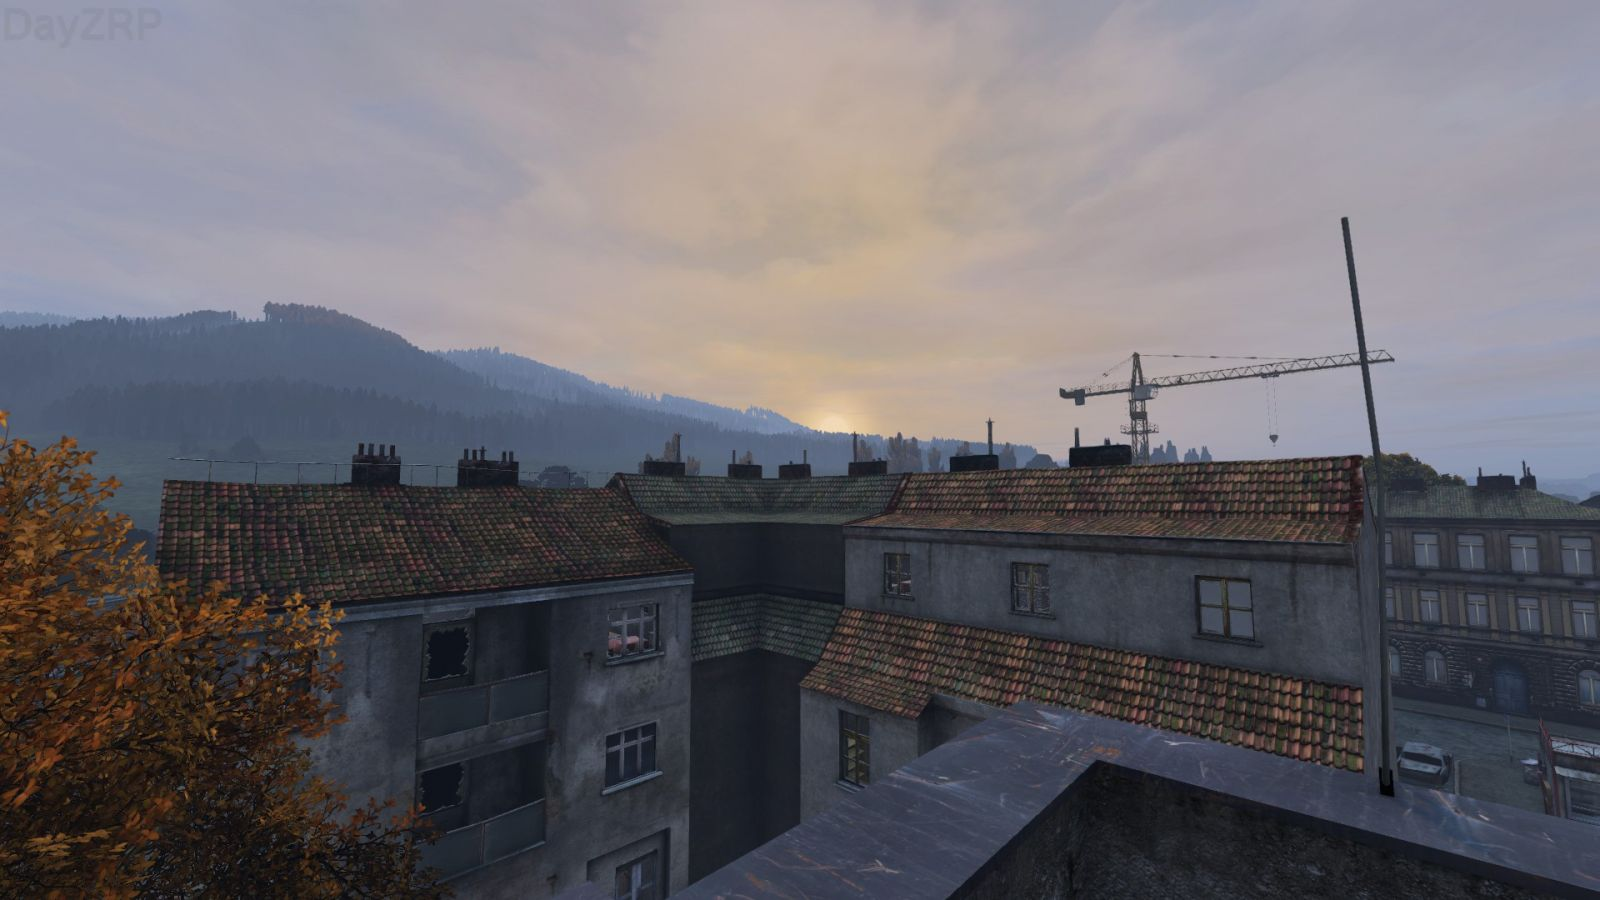 Goodnight Chernarus